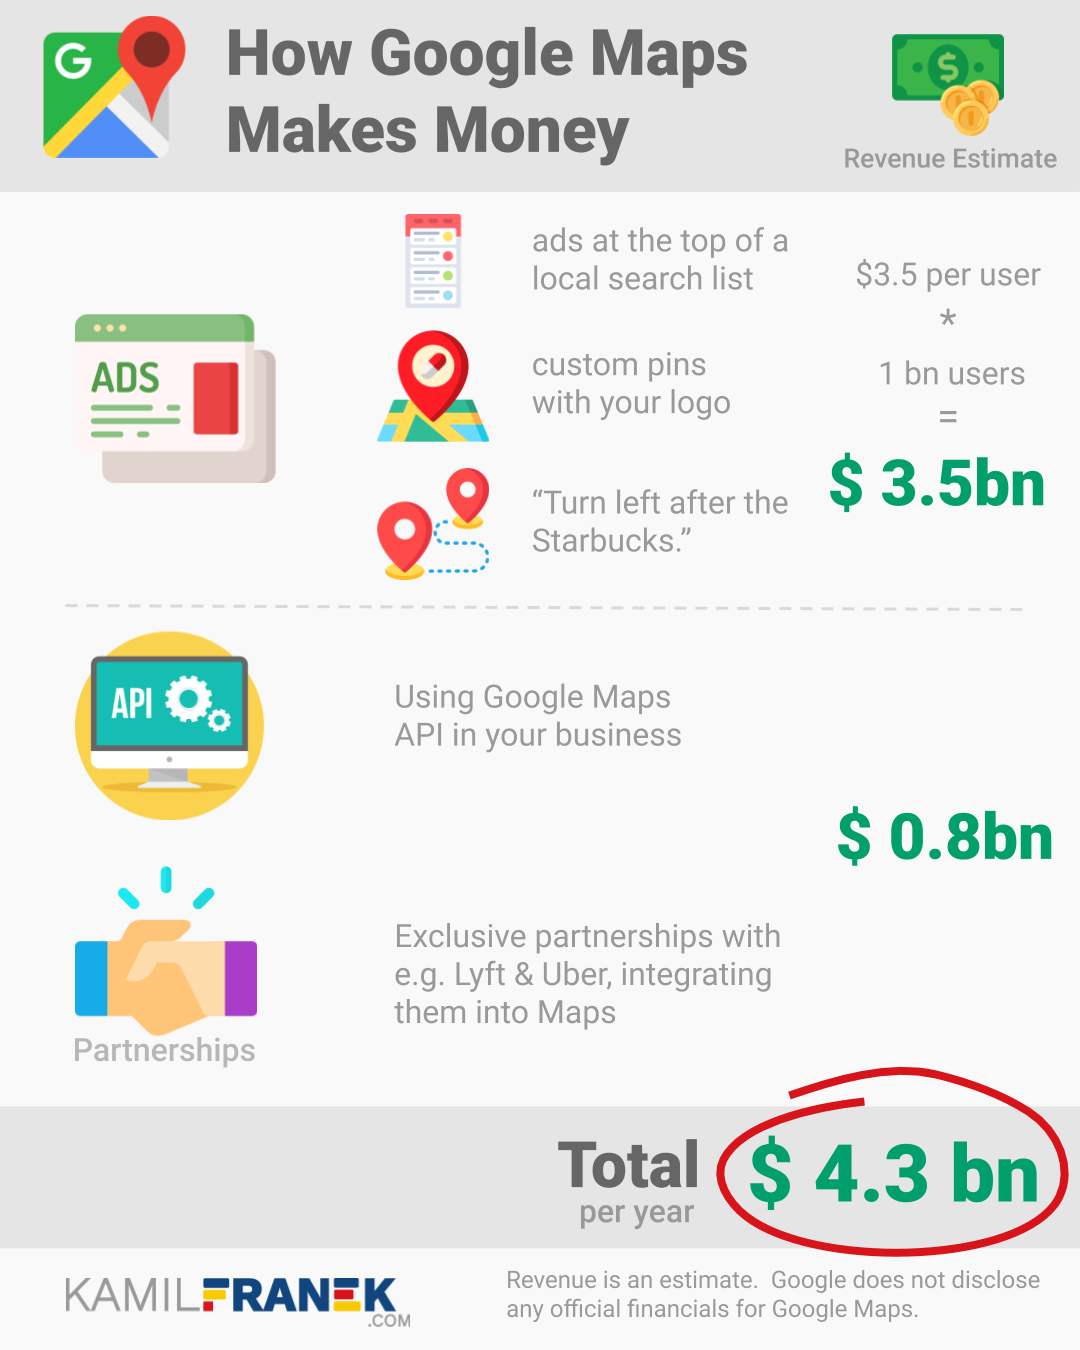 Infographics showing different ways how Google Maps makes money, with revenue estimate for each of them